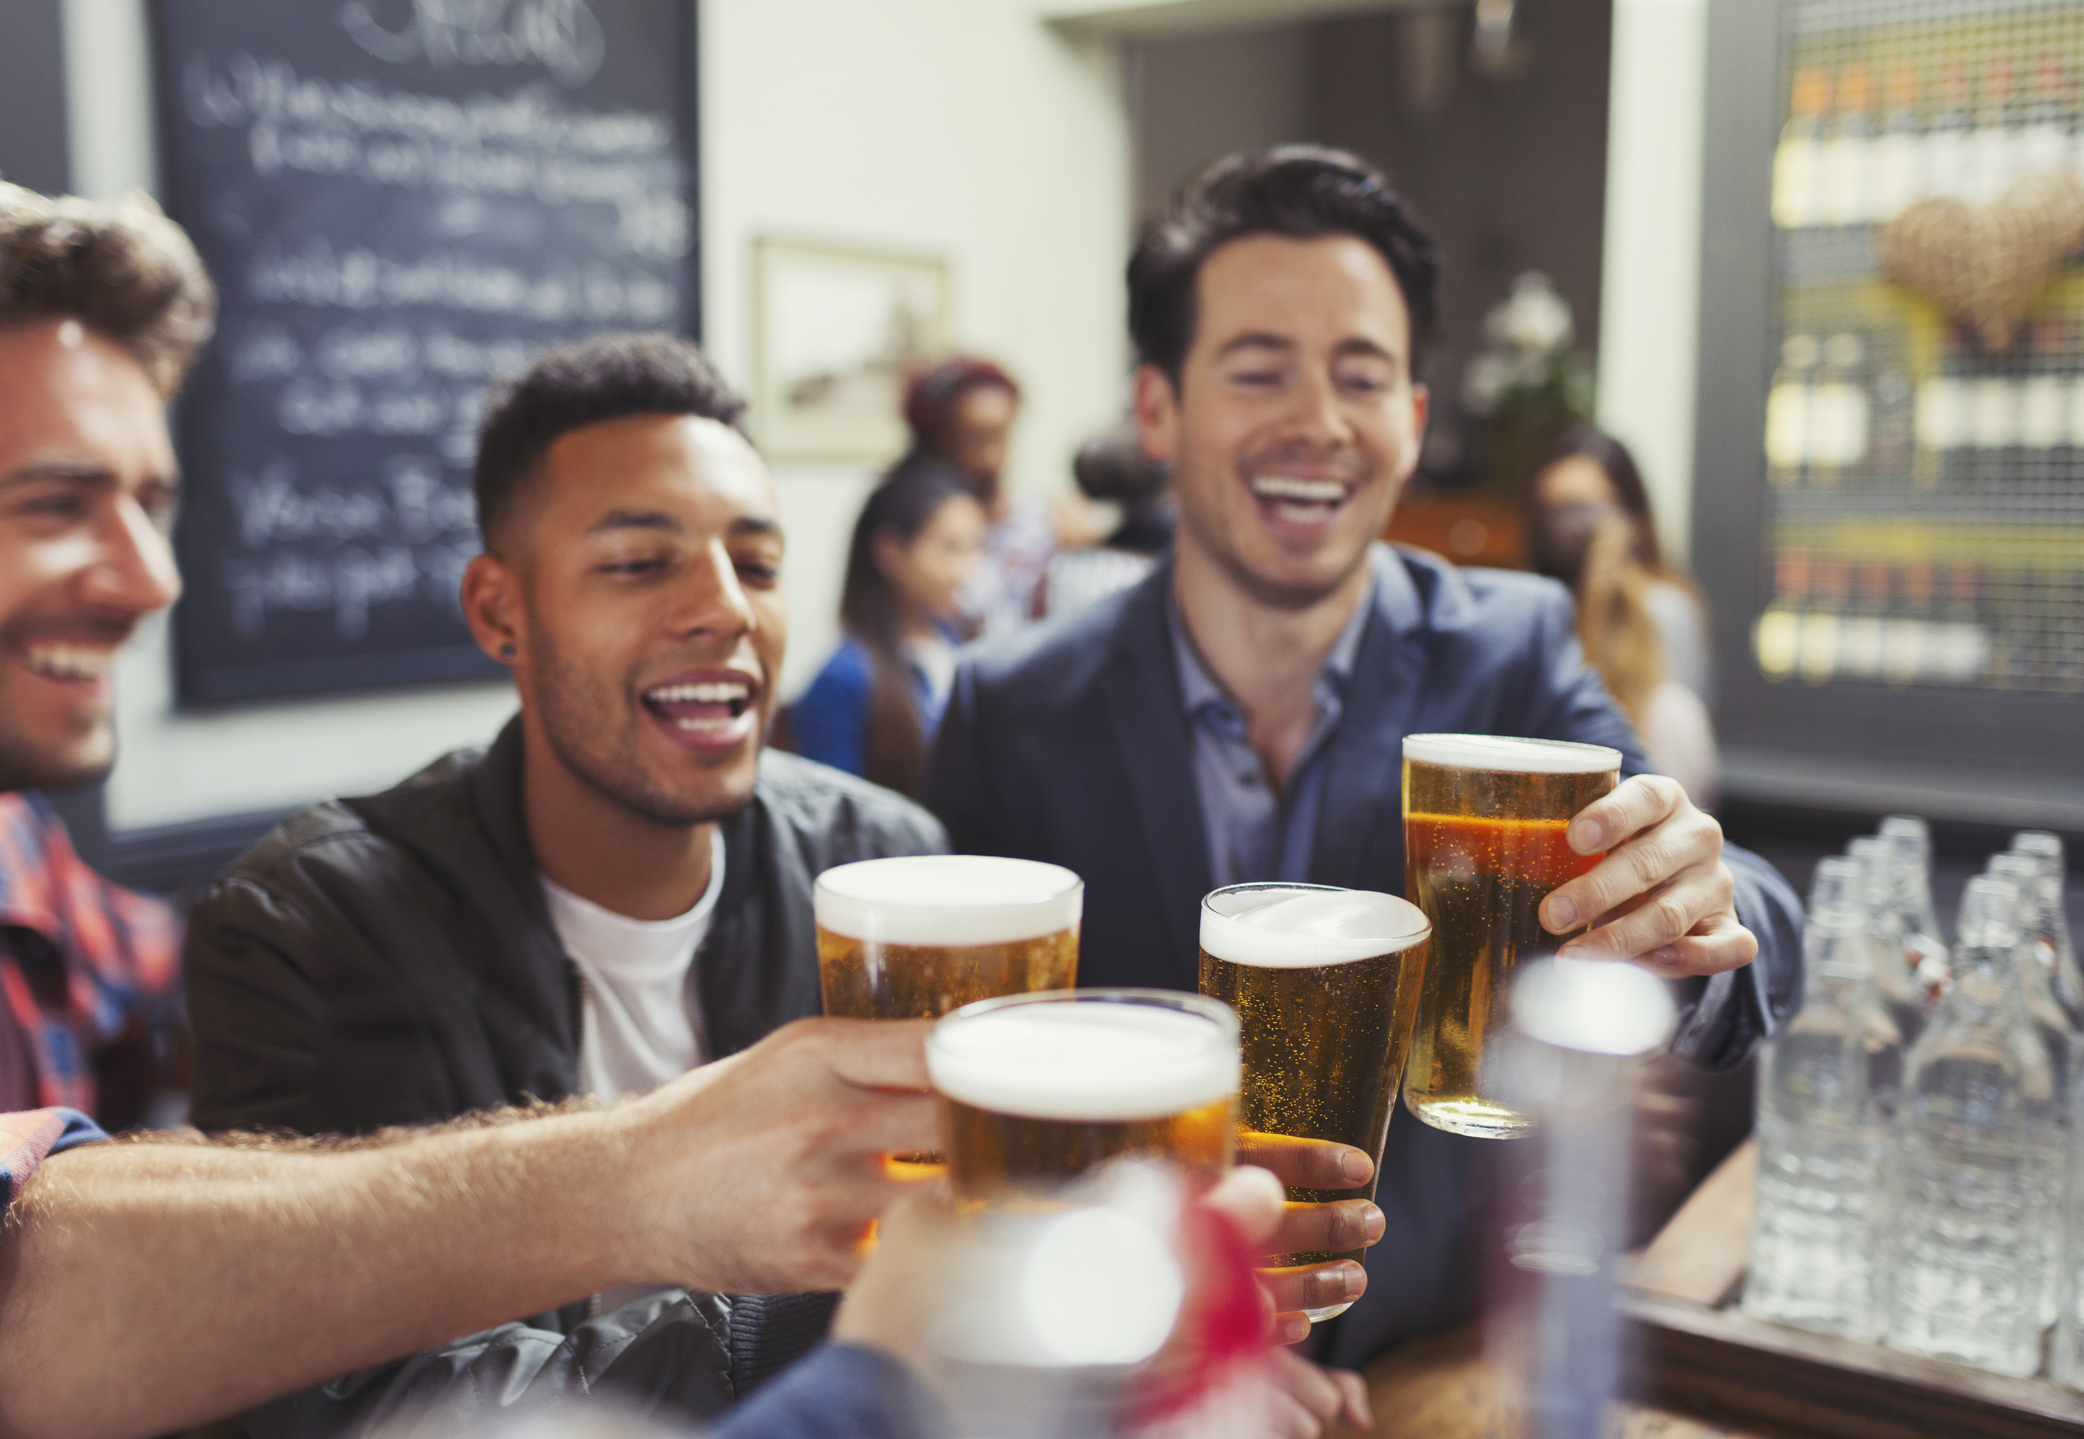 Male friends toasting beer glasses at bar.